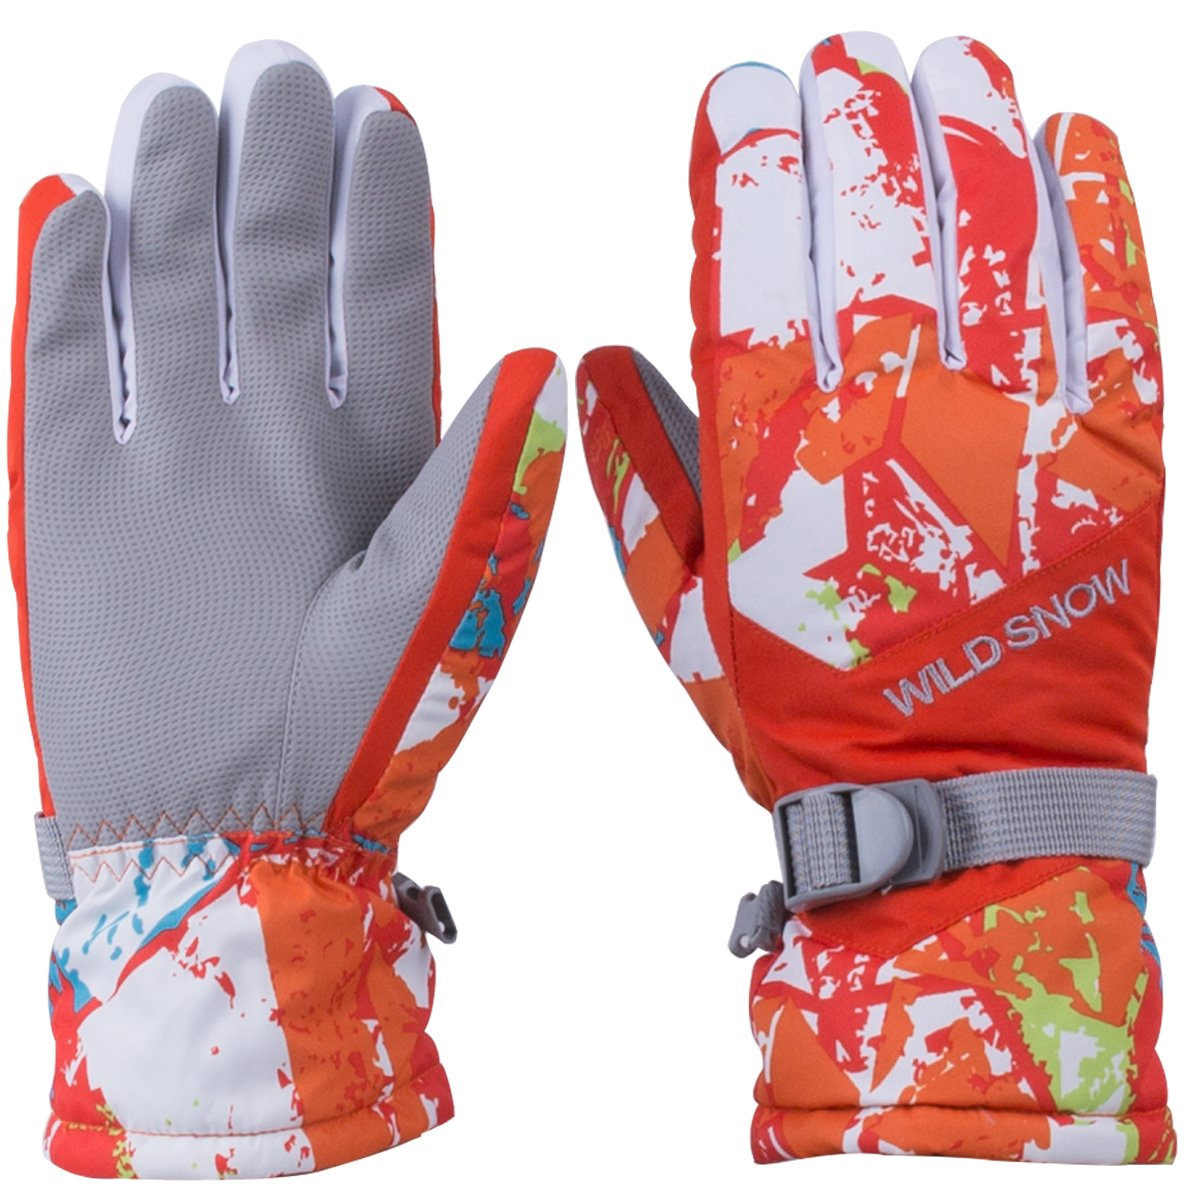 WILD SNOW Women\'s Winter Ski Gloves Colorful Winter Waterproof Windproof Gloves for Cycling Snowboarding and Working